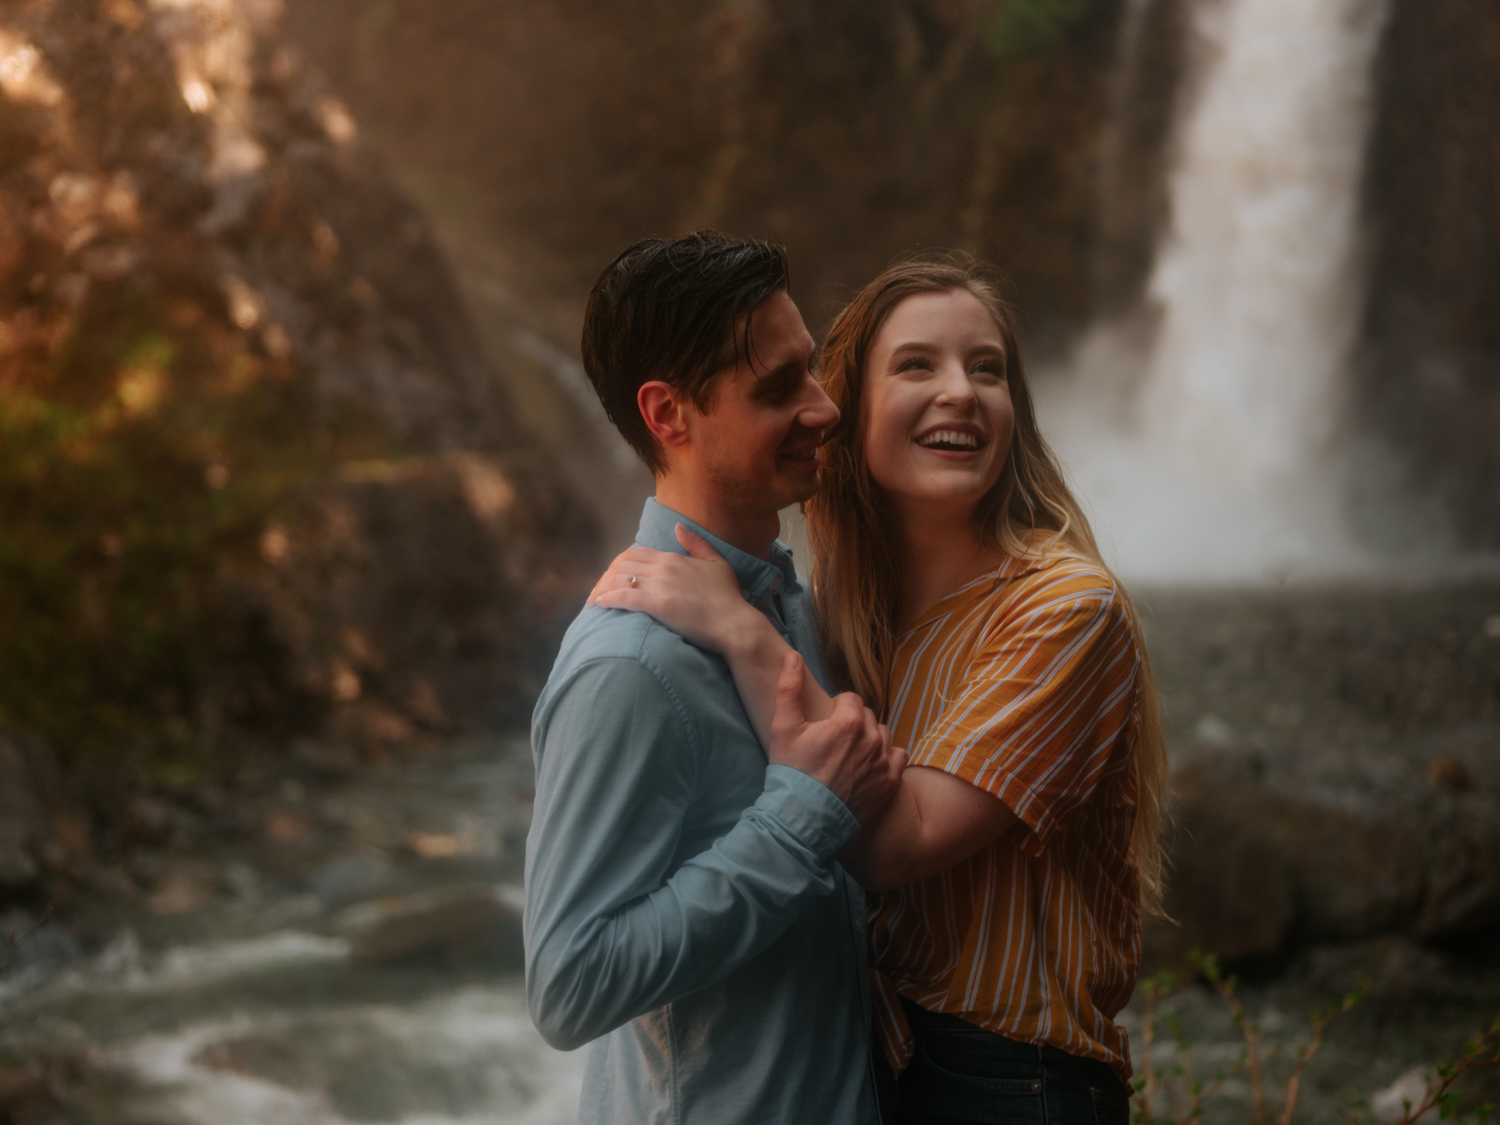 Franklin Falls Washington Engagement Session Stolen Glimpses Seattle Wedding Photographer 40.jpg